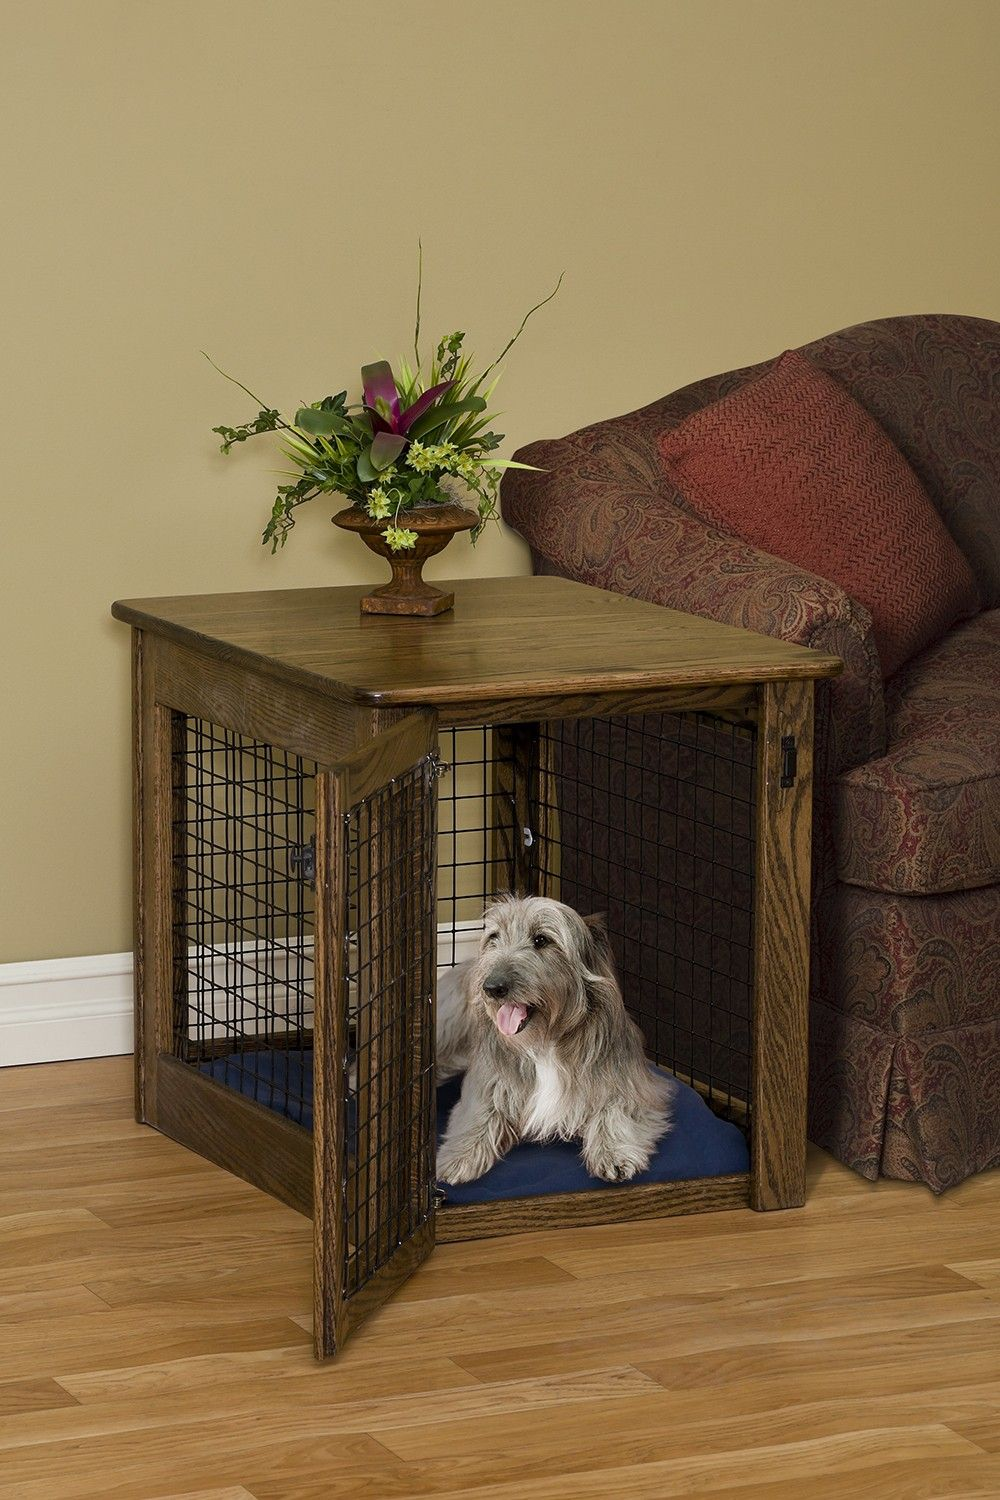 amish craftsman wooden end table dog crate puppy medium size crates that look like tables via etsy promo code off raymond and flaming furniture kmart rugs powell wall colors with